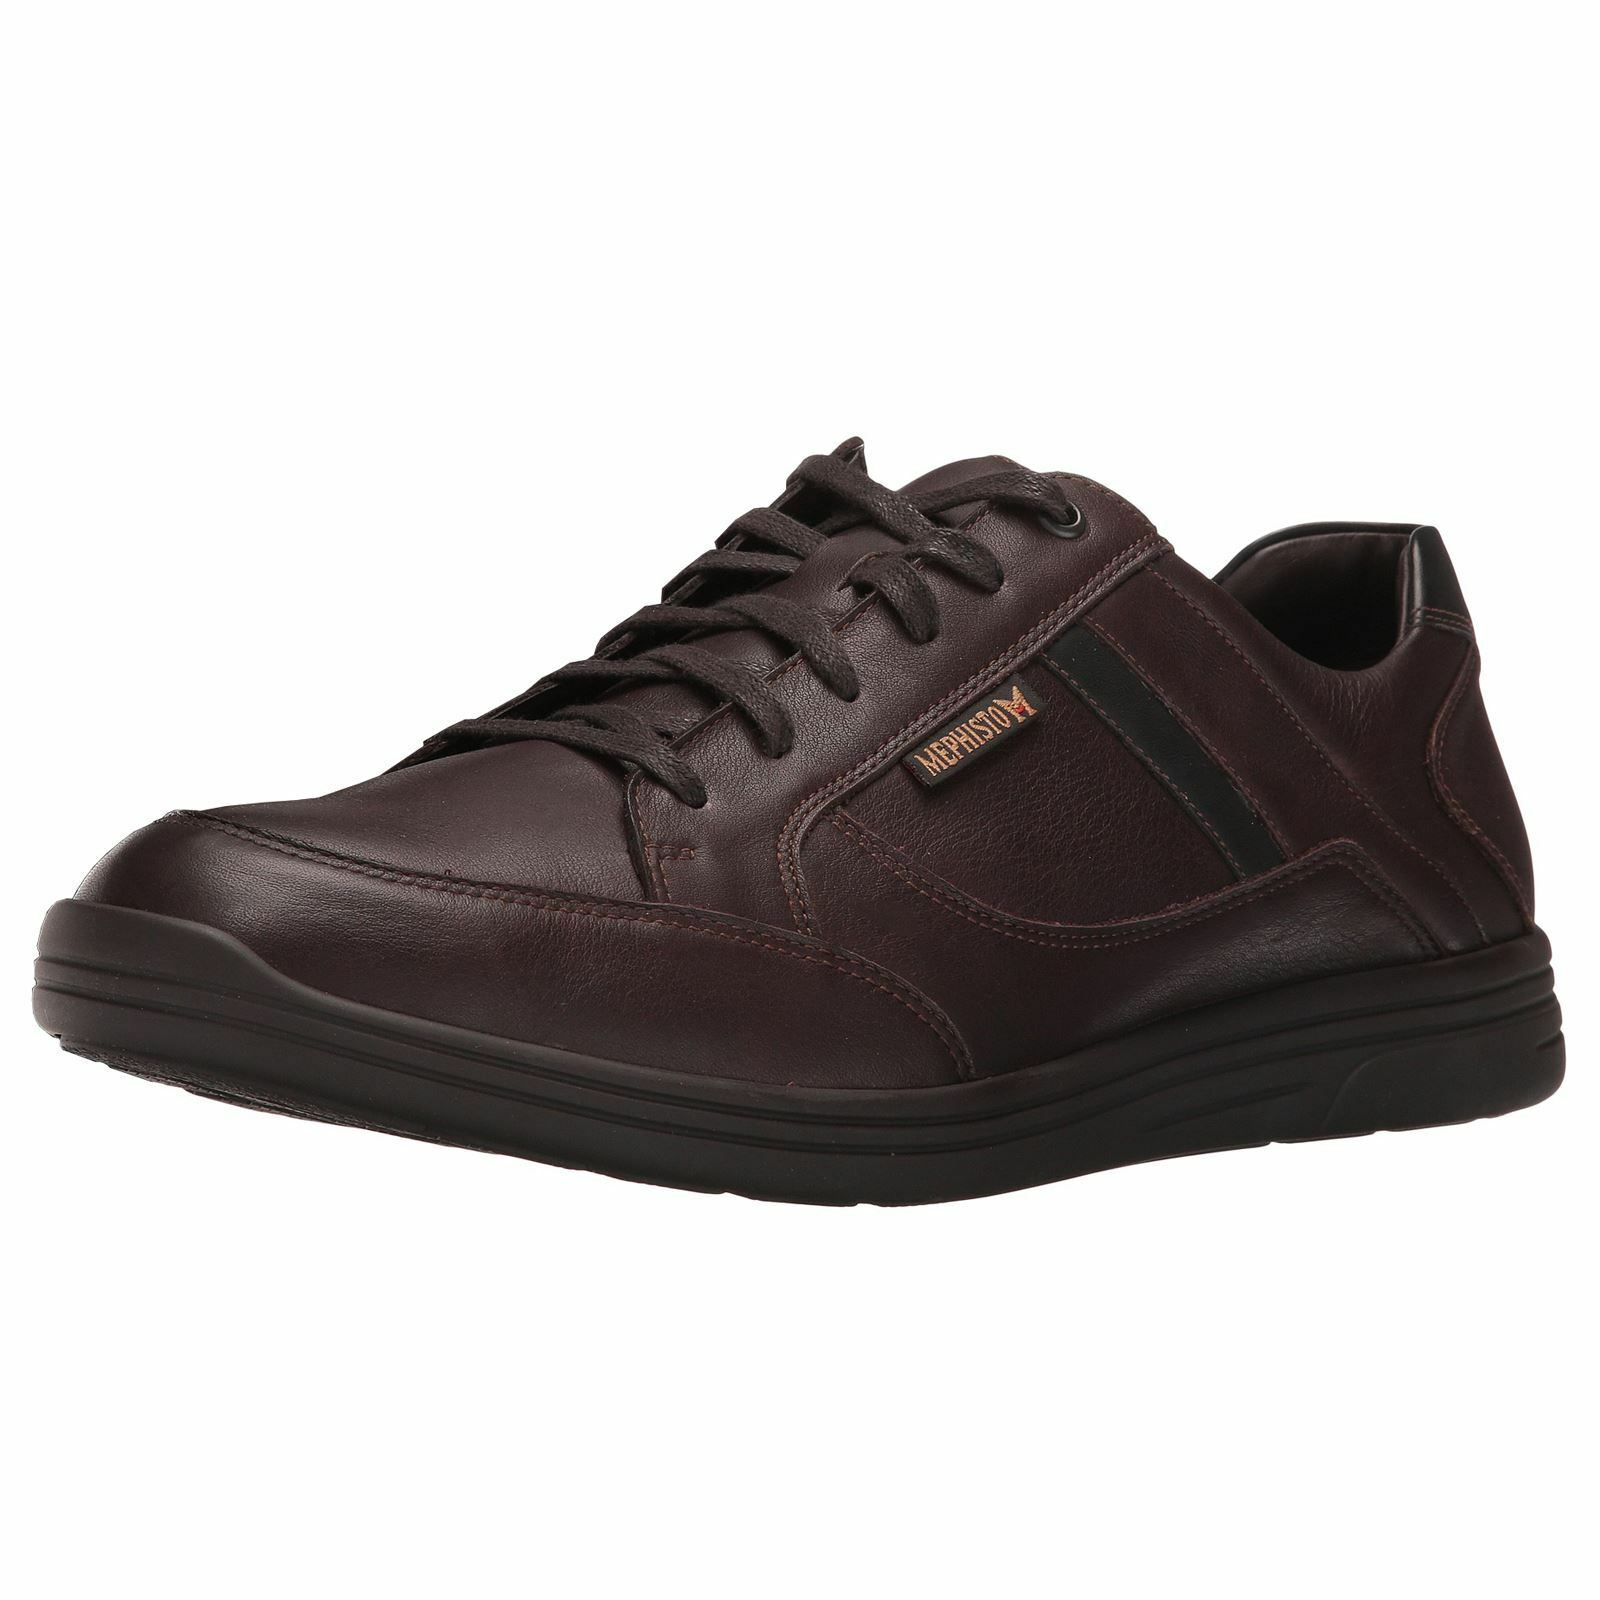 Mephisto Frank Dark braun Mens Comfort Trainers Smooth Leather